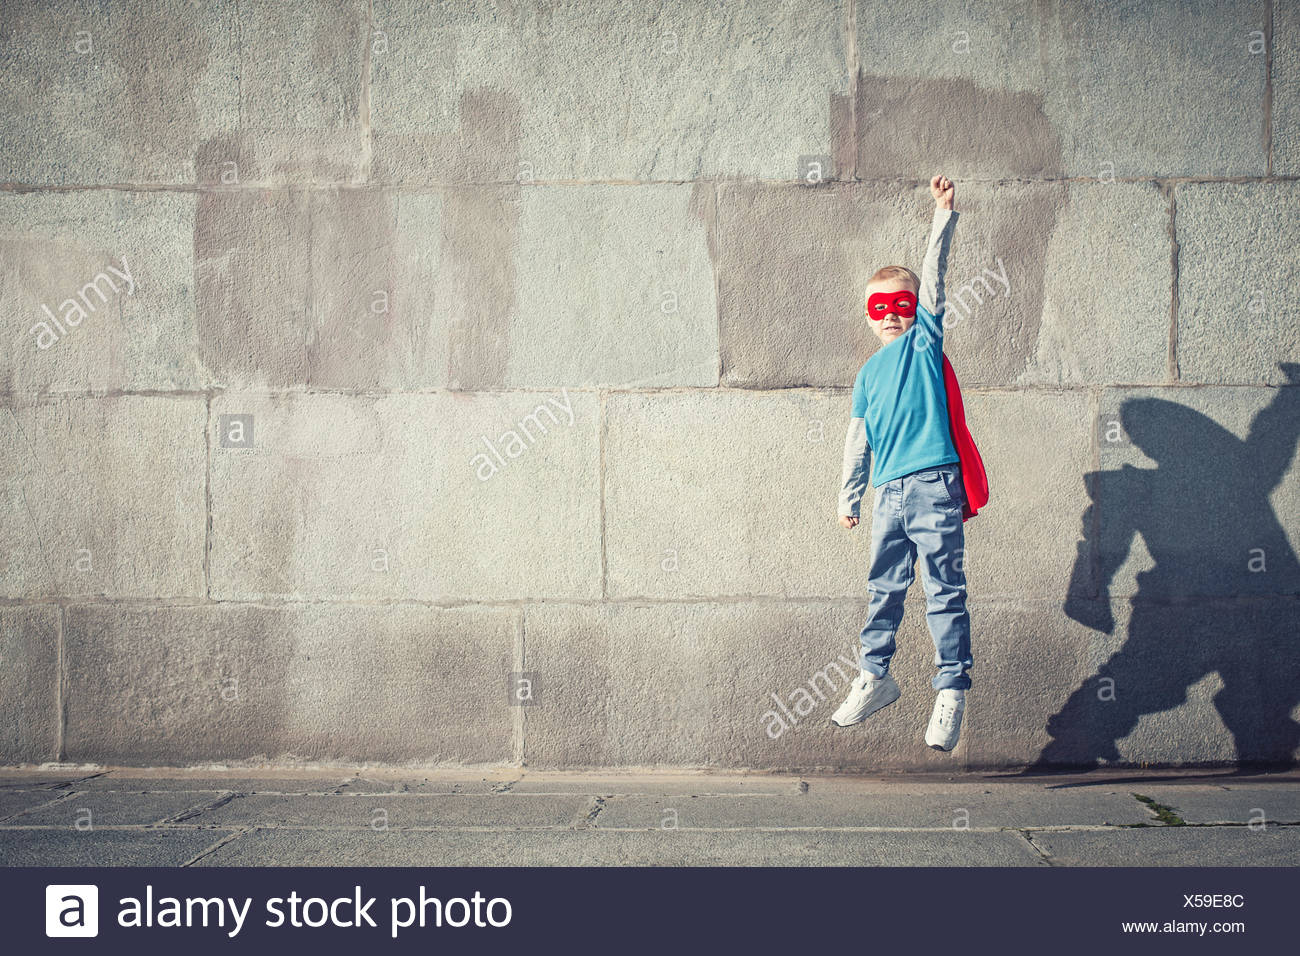 Jumping boy - Stock Image